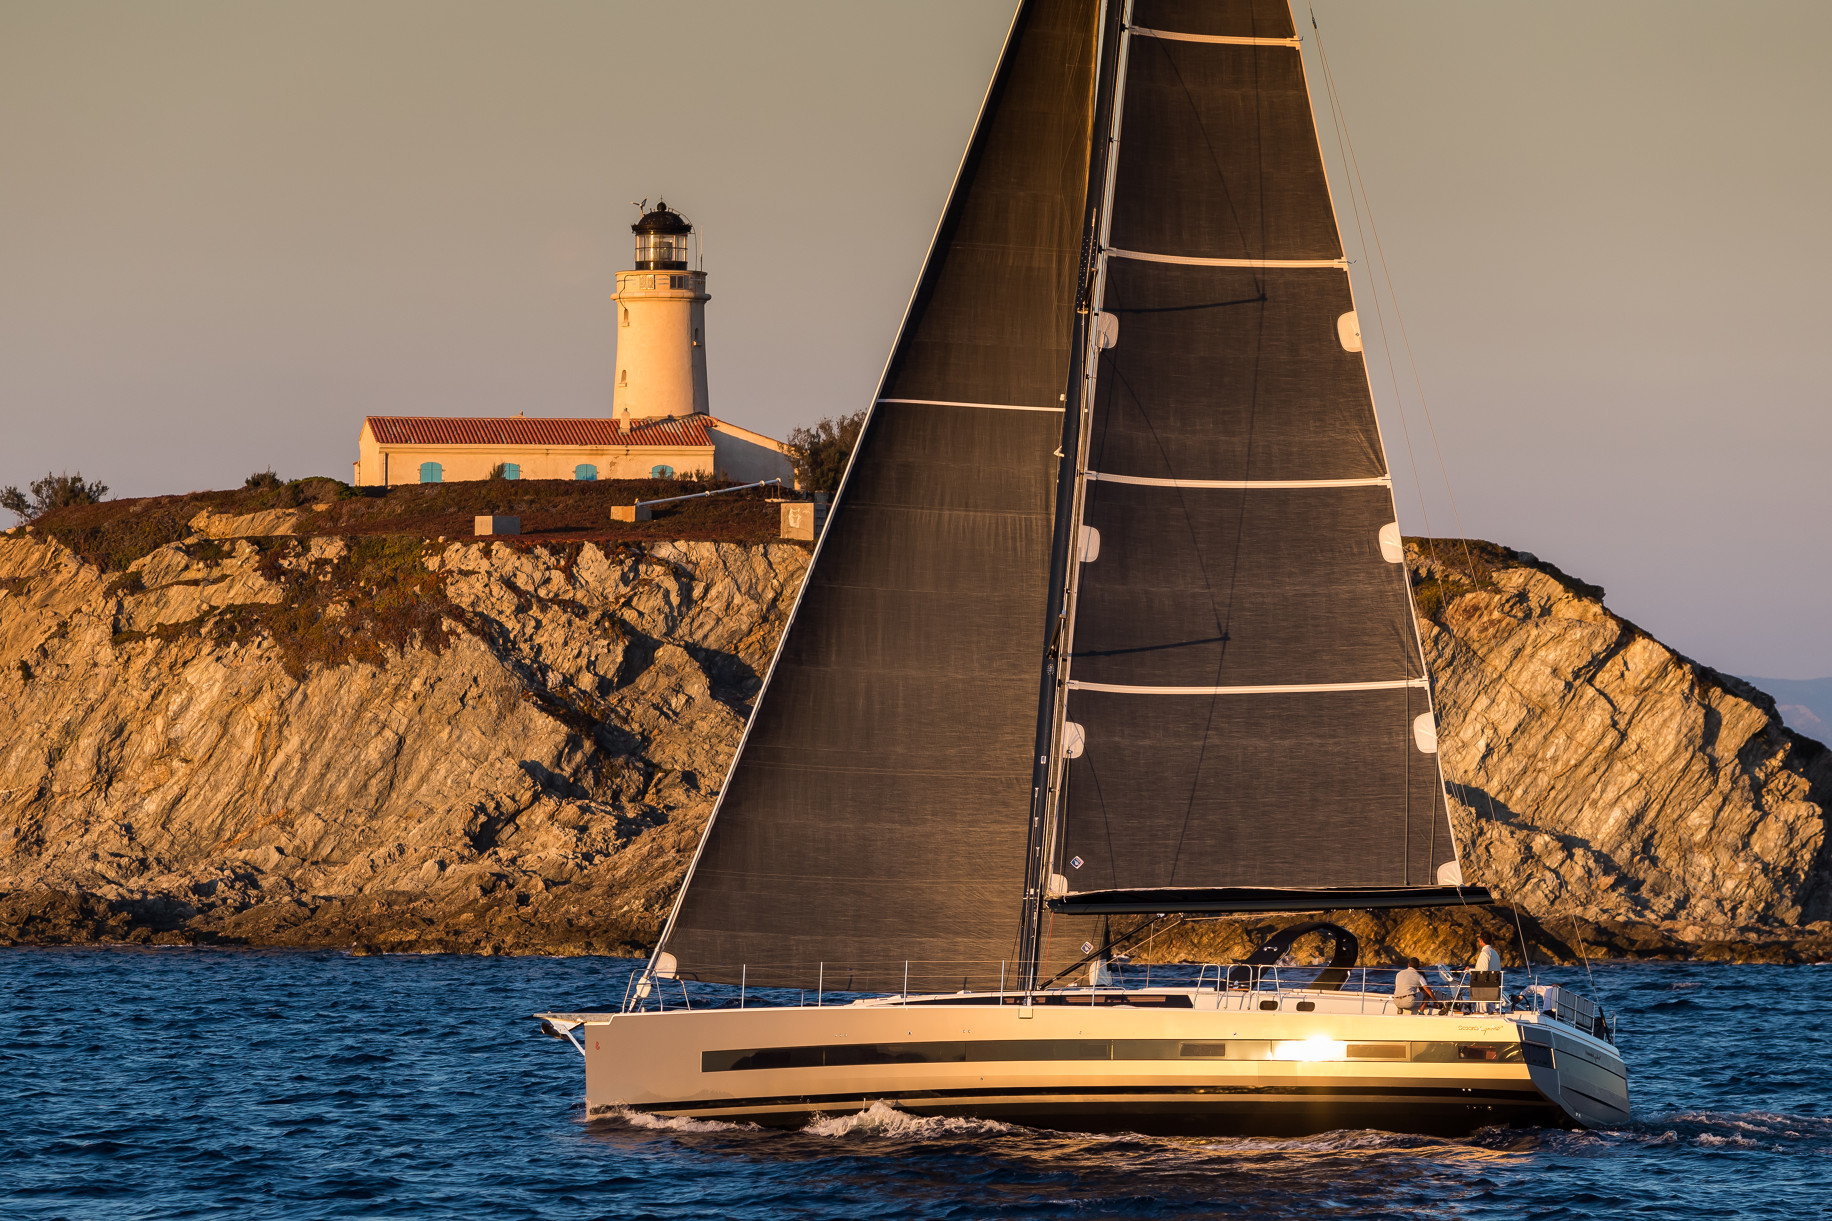 The all new Oceanis Yacht 62 By Beneteau. Ph: Guido Cantini  /  Sea&See